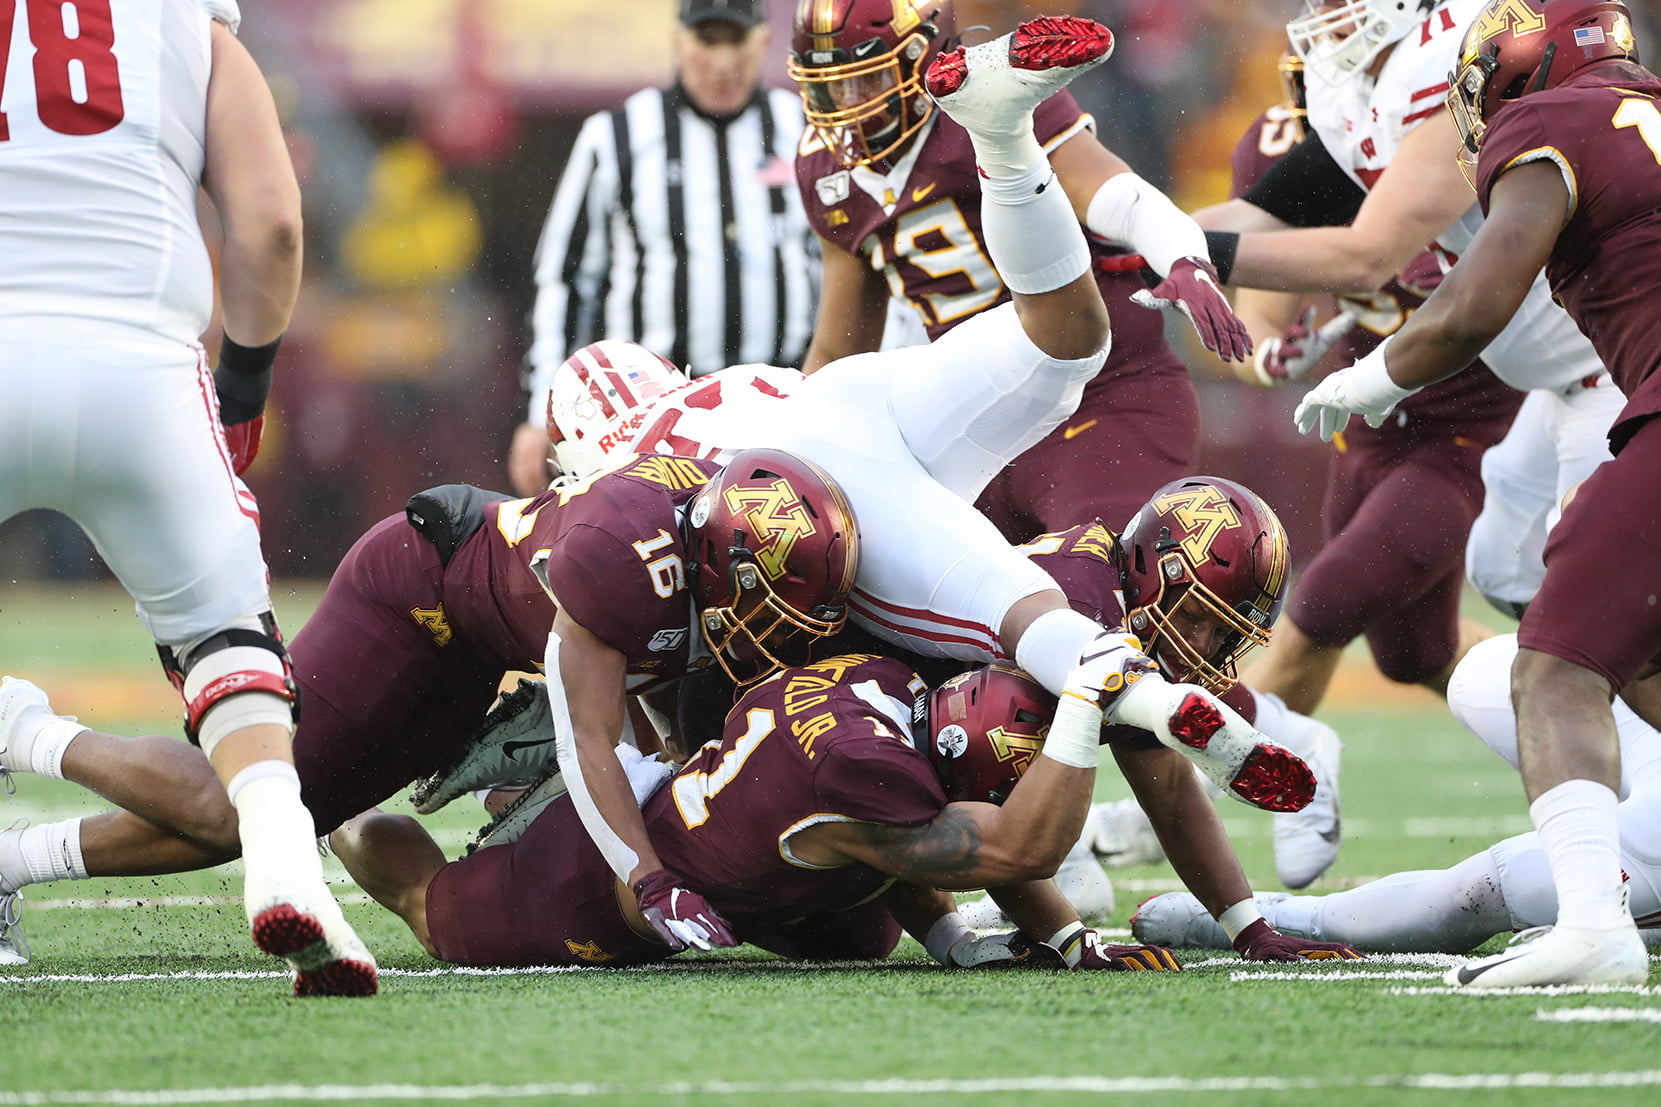 Wisconsin Minnesota Scores Highest Ratings In Years Sports Media Watch